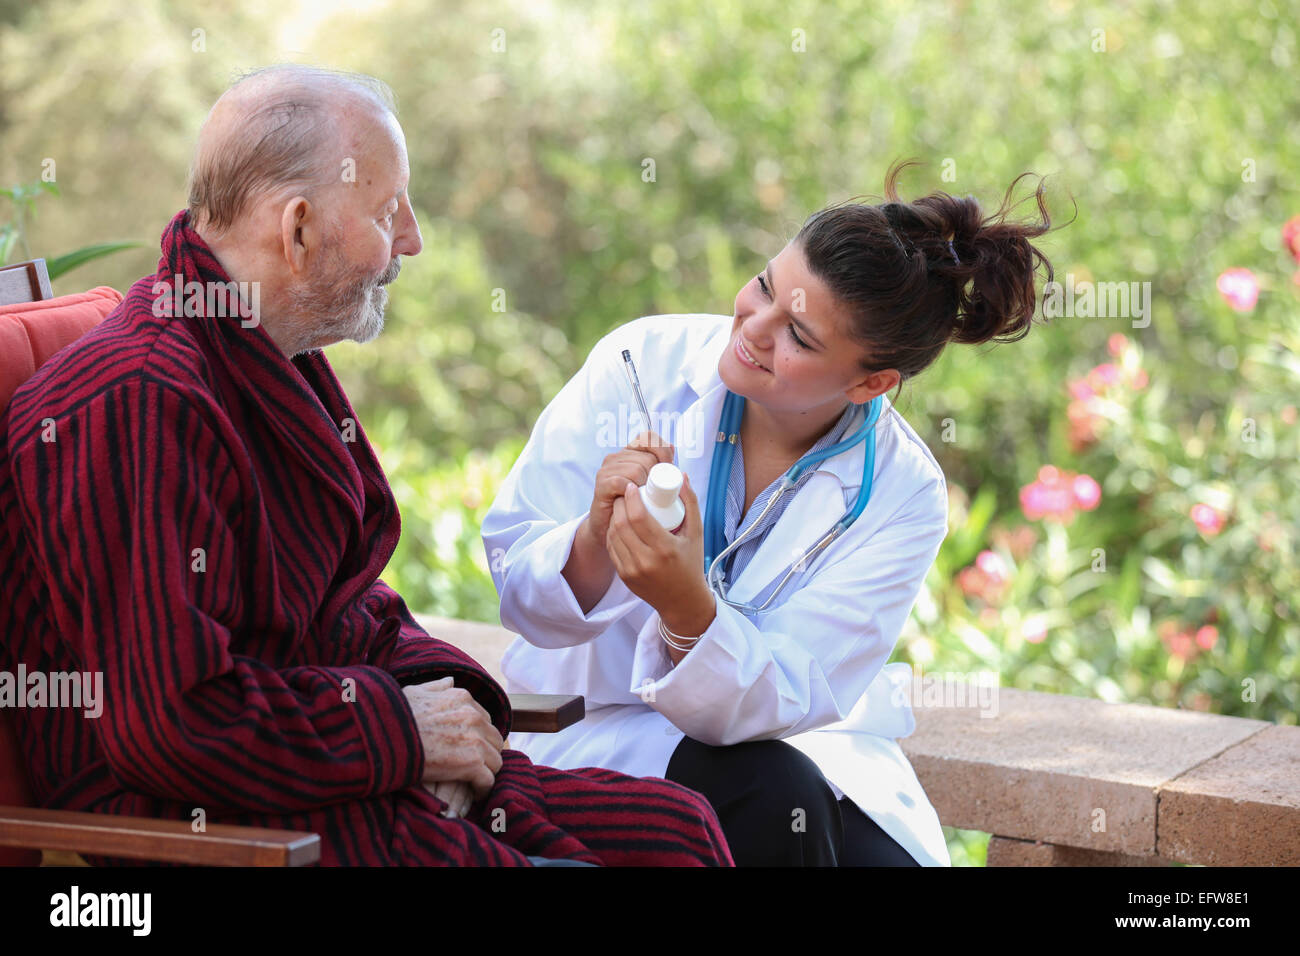 smiling Dr or nurse giving medication to senior patient. - Stock Image